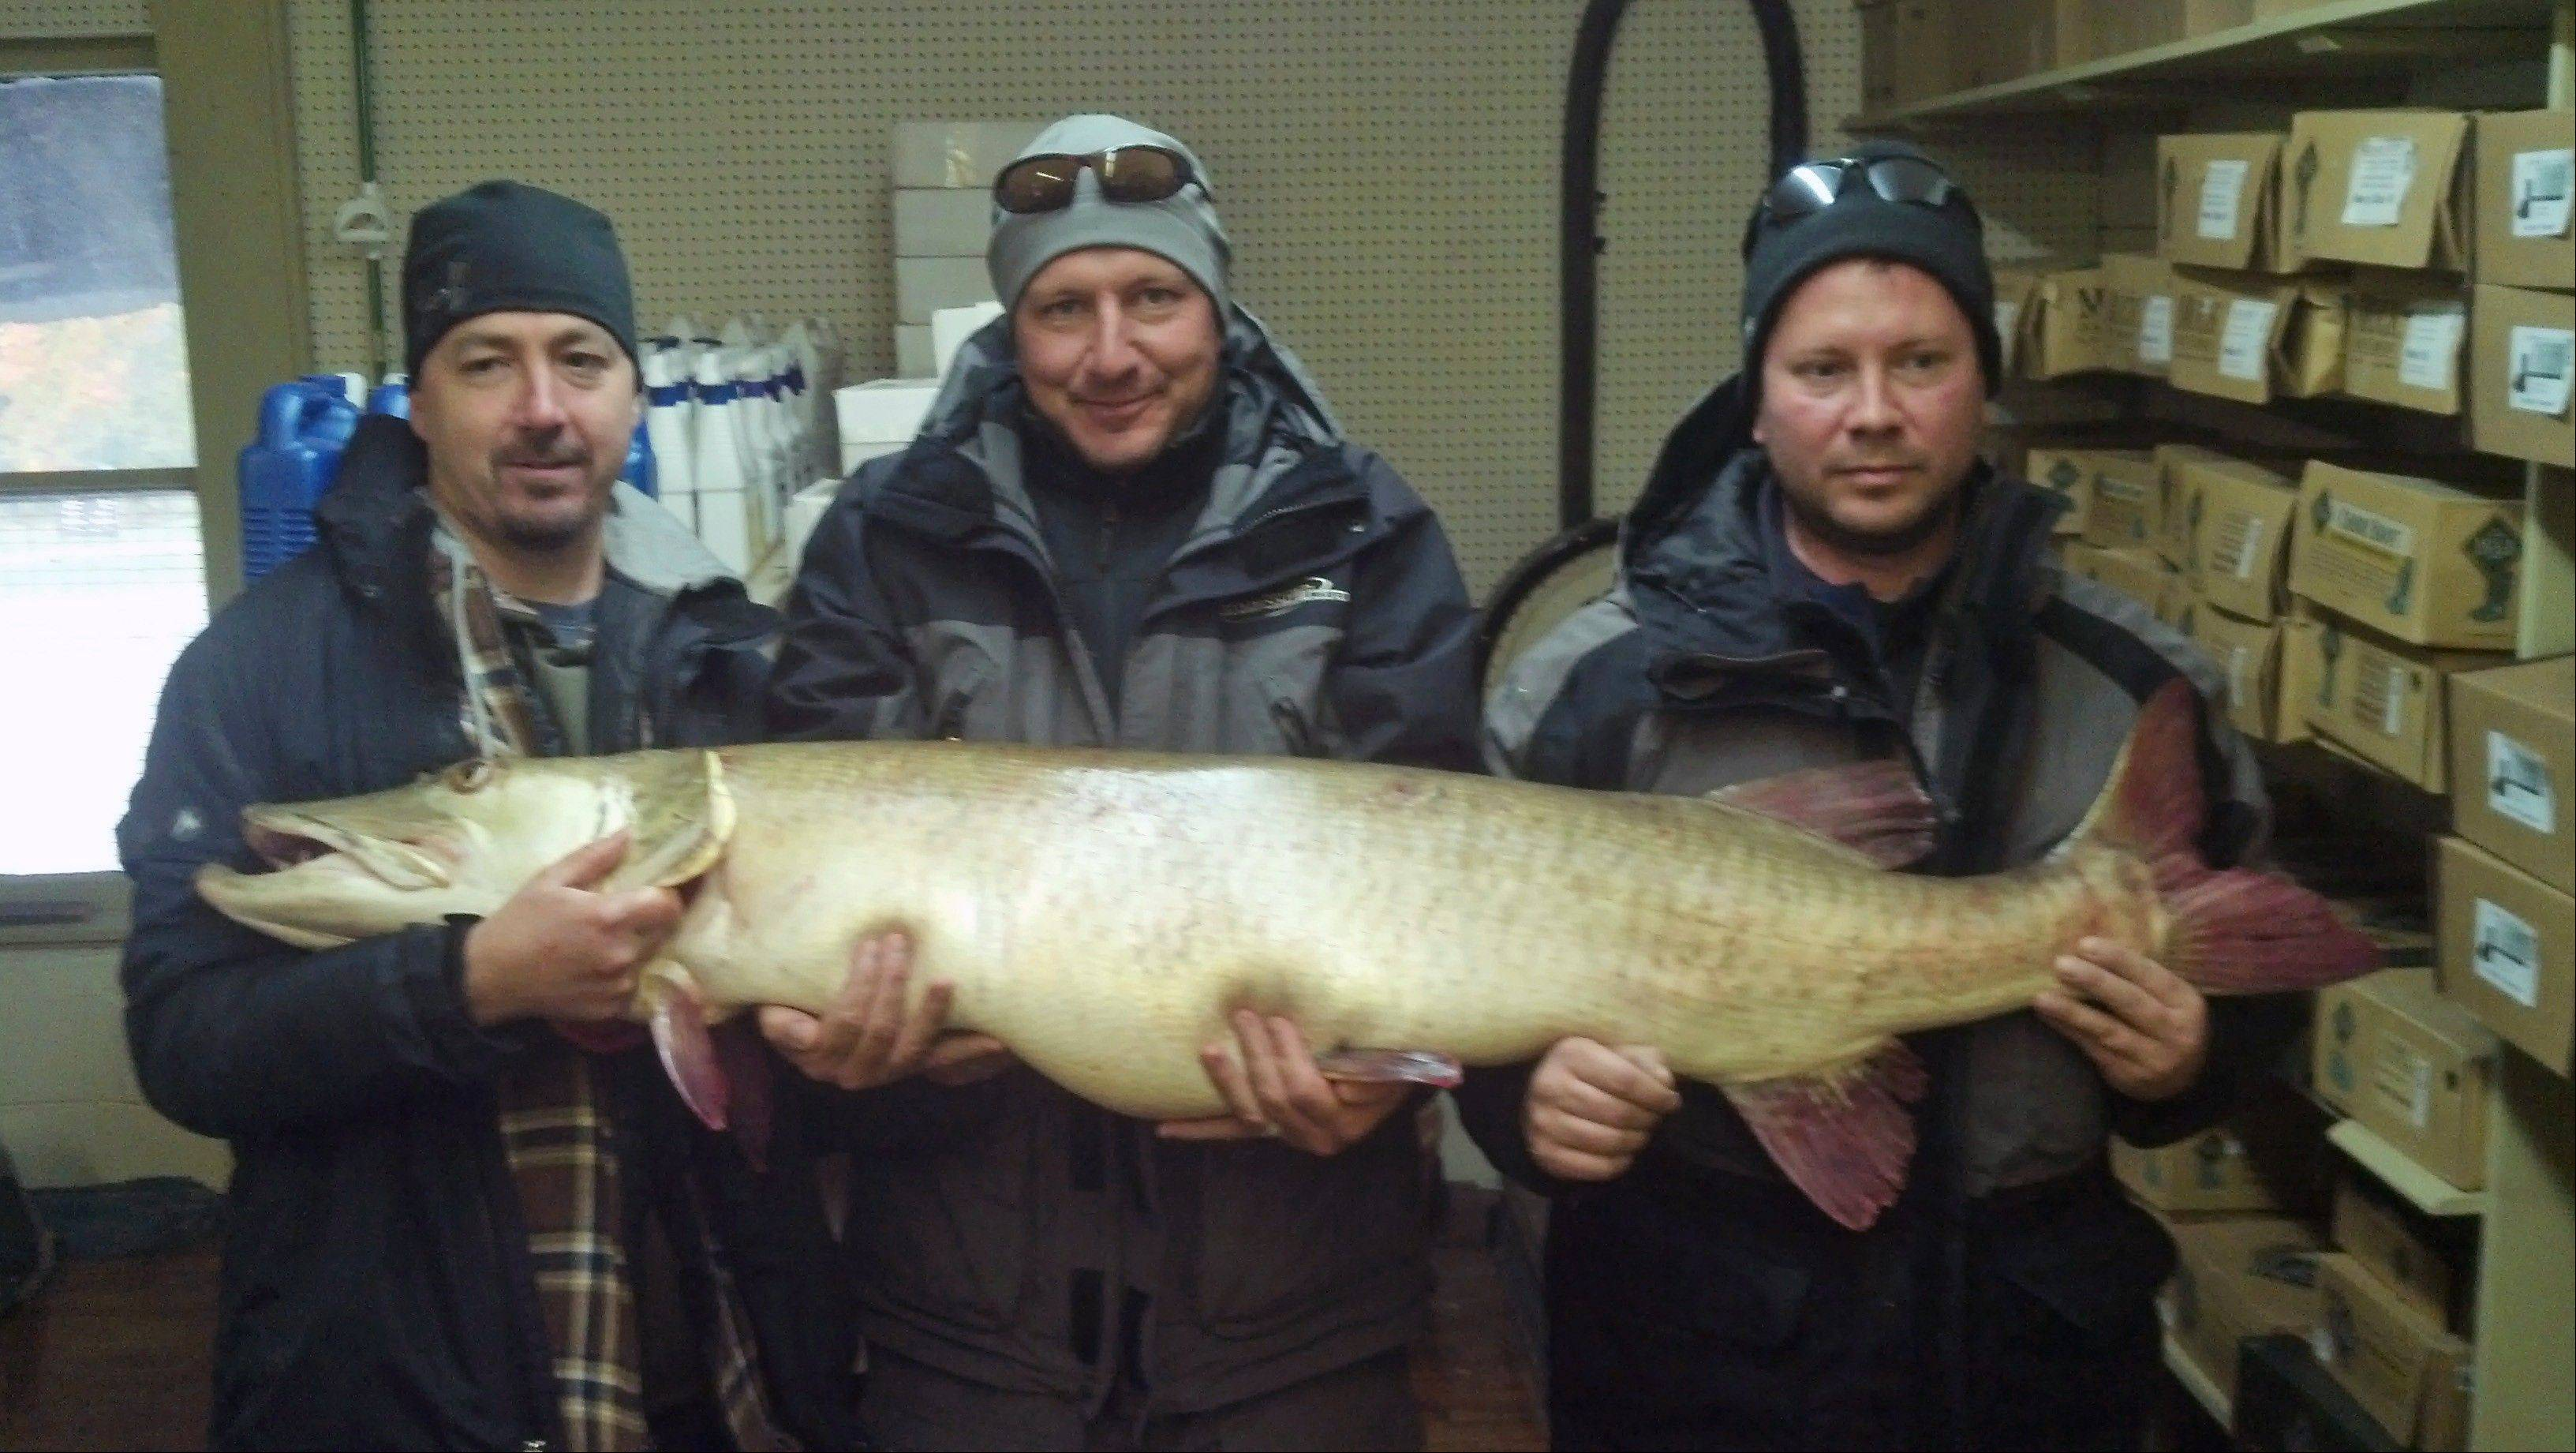 Joseph Seeberger, center, of Portage, Mich., and two friends hold a record-setting muskellunge caught in Antrim County. The muskie weighed 58 pounds, was 59 inches long and had a girth of 29 inches. The catch is now a modern day world record.